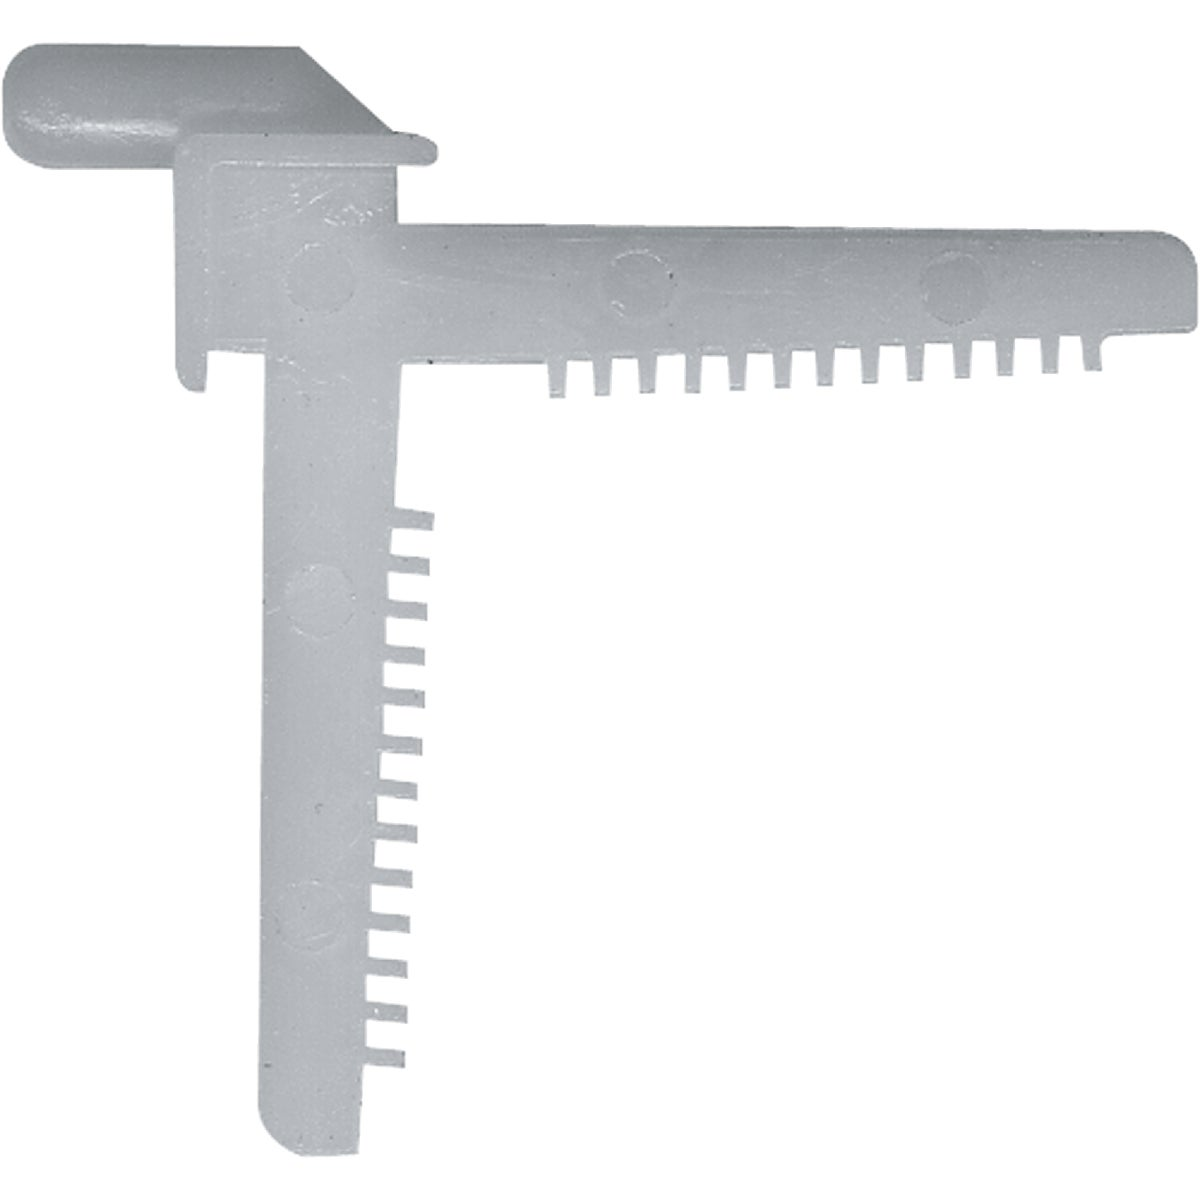 5/32X1/4 NYLON TILT KEY - PL15138 by Prime Line Products